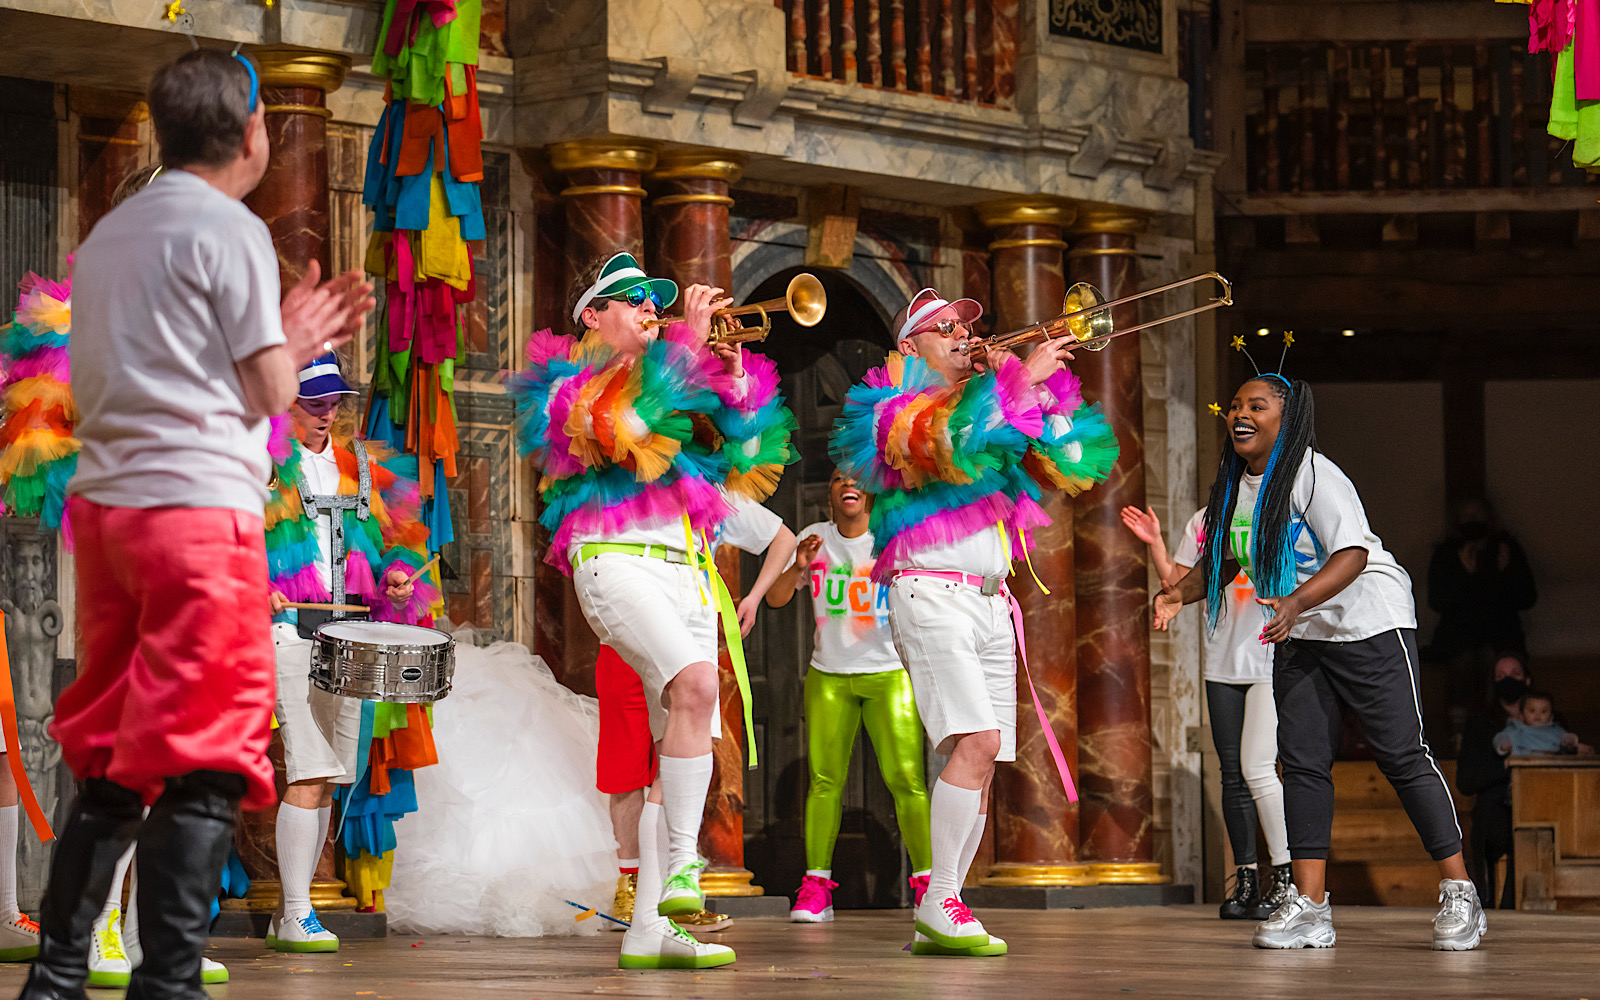 A group of musicians perform on stage in brightly-coloured jackets whilst other actors dance and smile around them